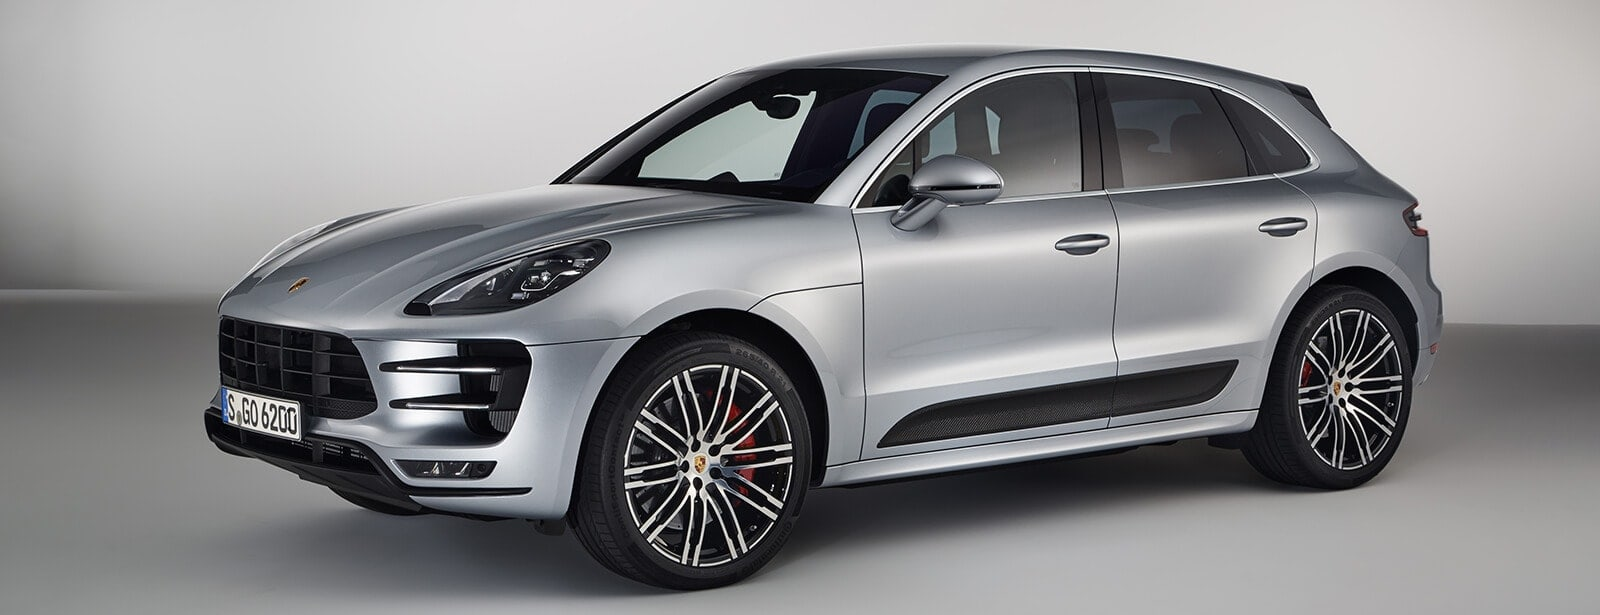 porsche macan leasing prignitzer leasing ag. Black Bedroom Furniture Sets. Home Design Ideas